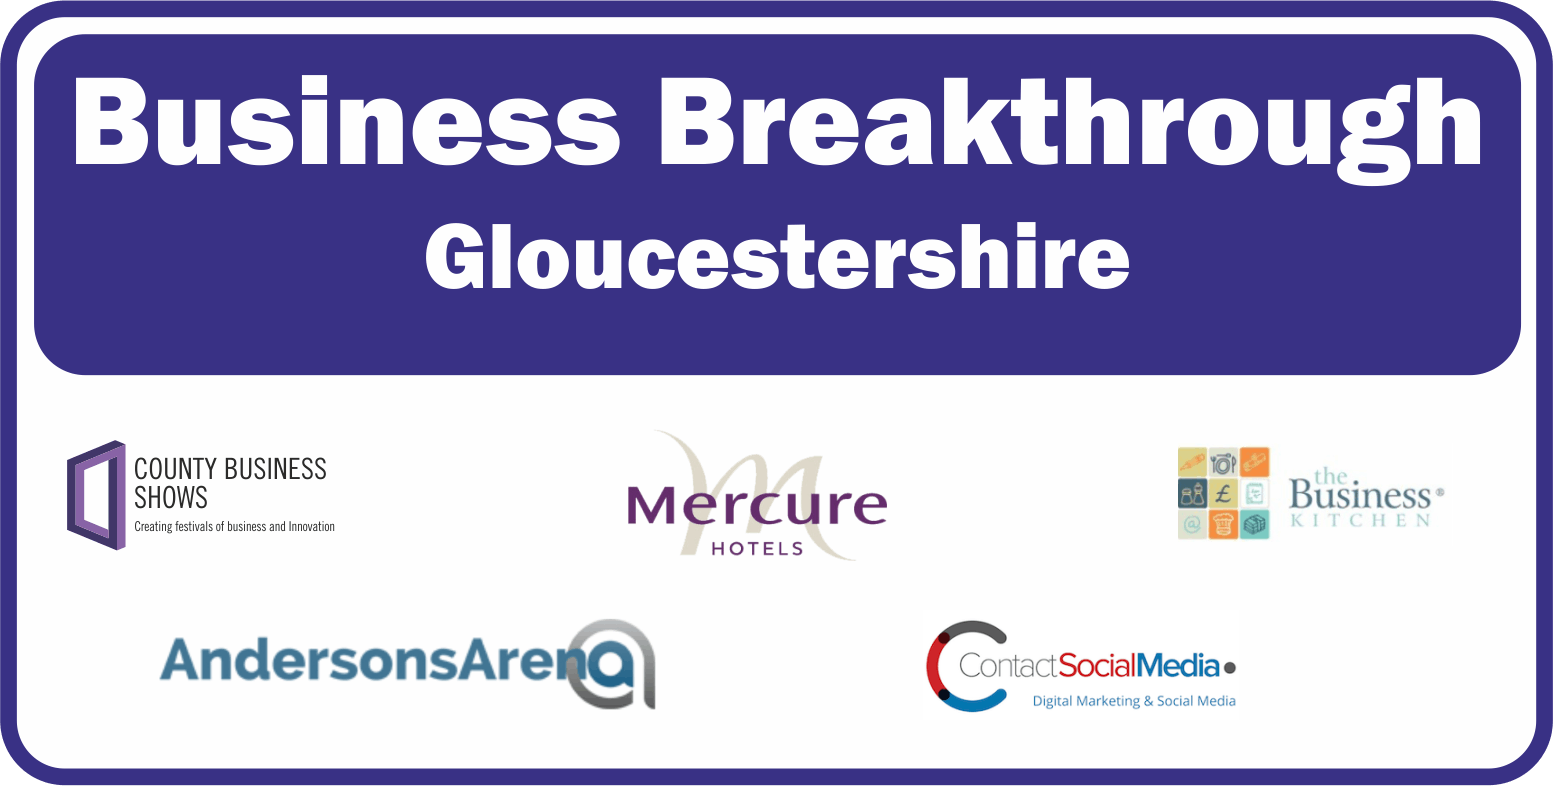 Business Breakthrough - Gloucestershire 16th